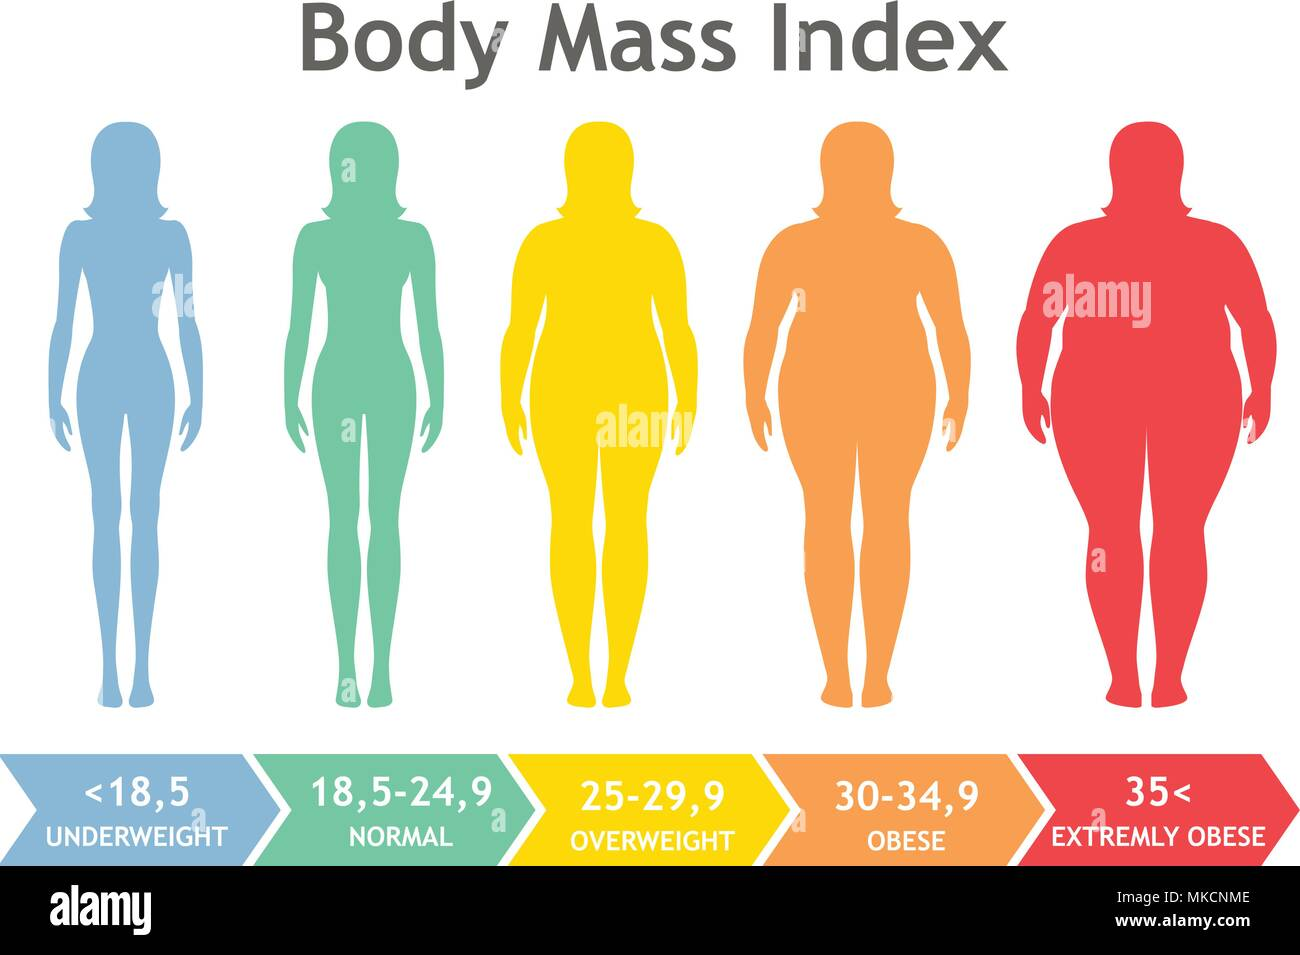 morbidly obese woman high resolution stock photography and images alamy https www alamy com body mass index vector illustration from underweight to extremely obese woman silhouettes with different obesity degrees female body with different image184062606 html